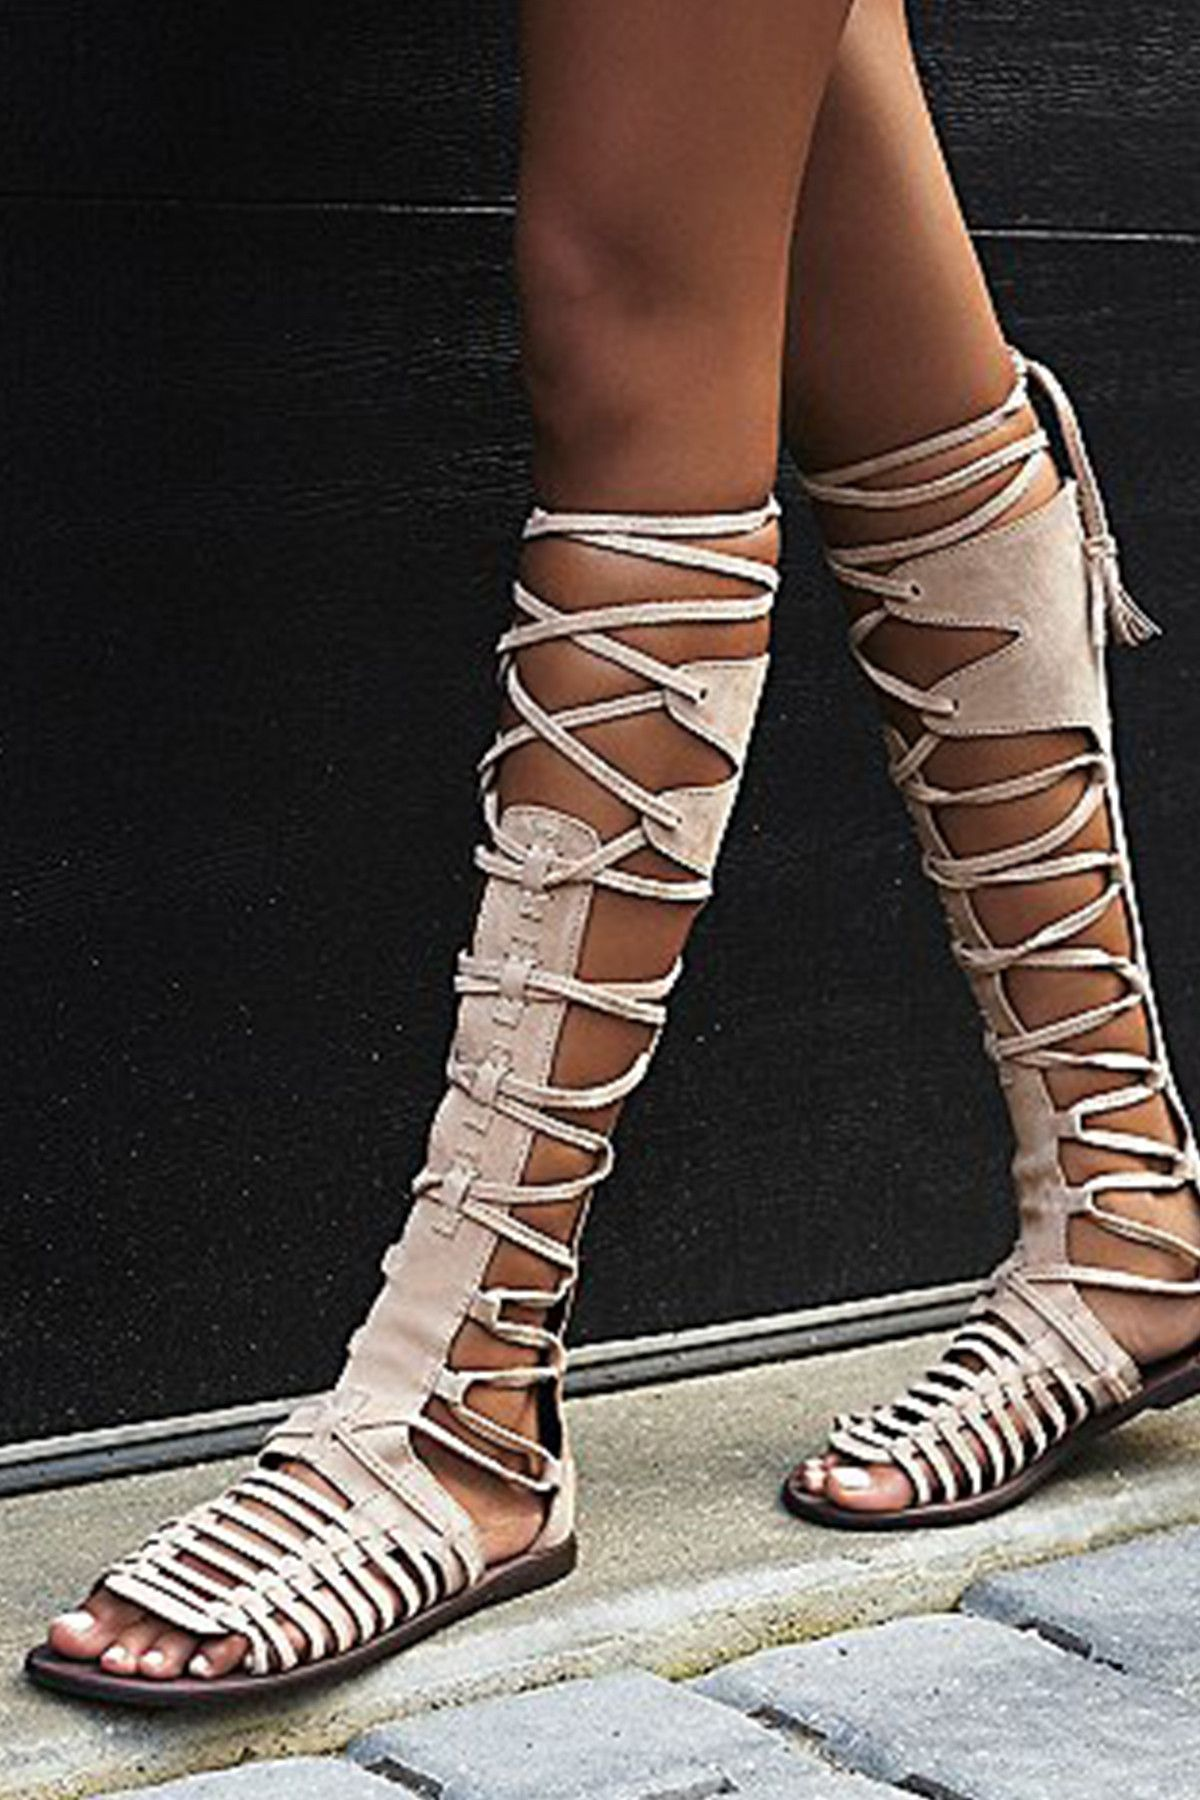 986d7d5926c Tall and strappy suede gladiator sandal with strappy lace-up detailing up  the front. Back zipper closure. Style    OB468831 Material  Suede Color  ...